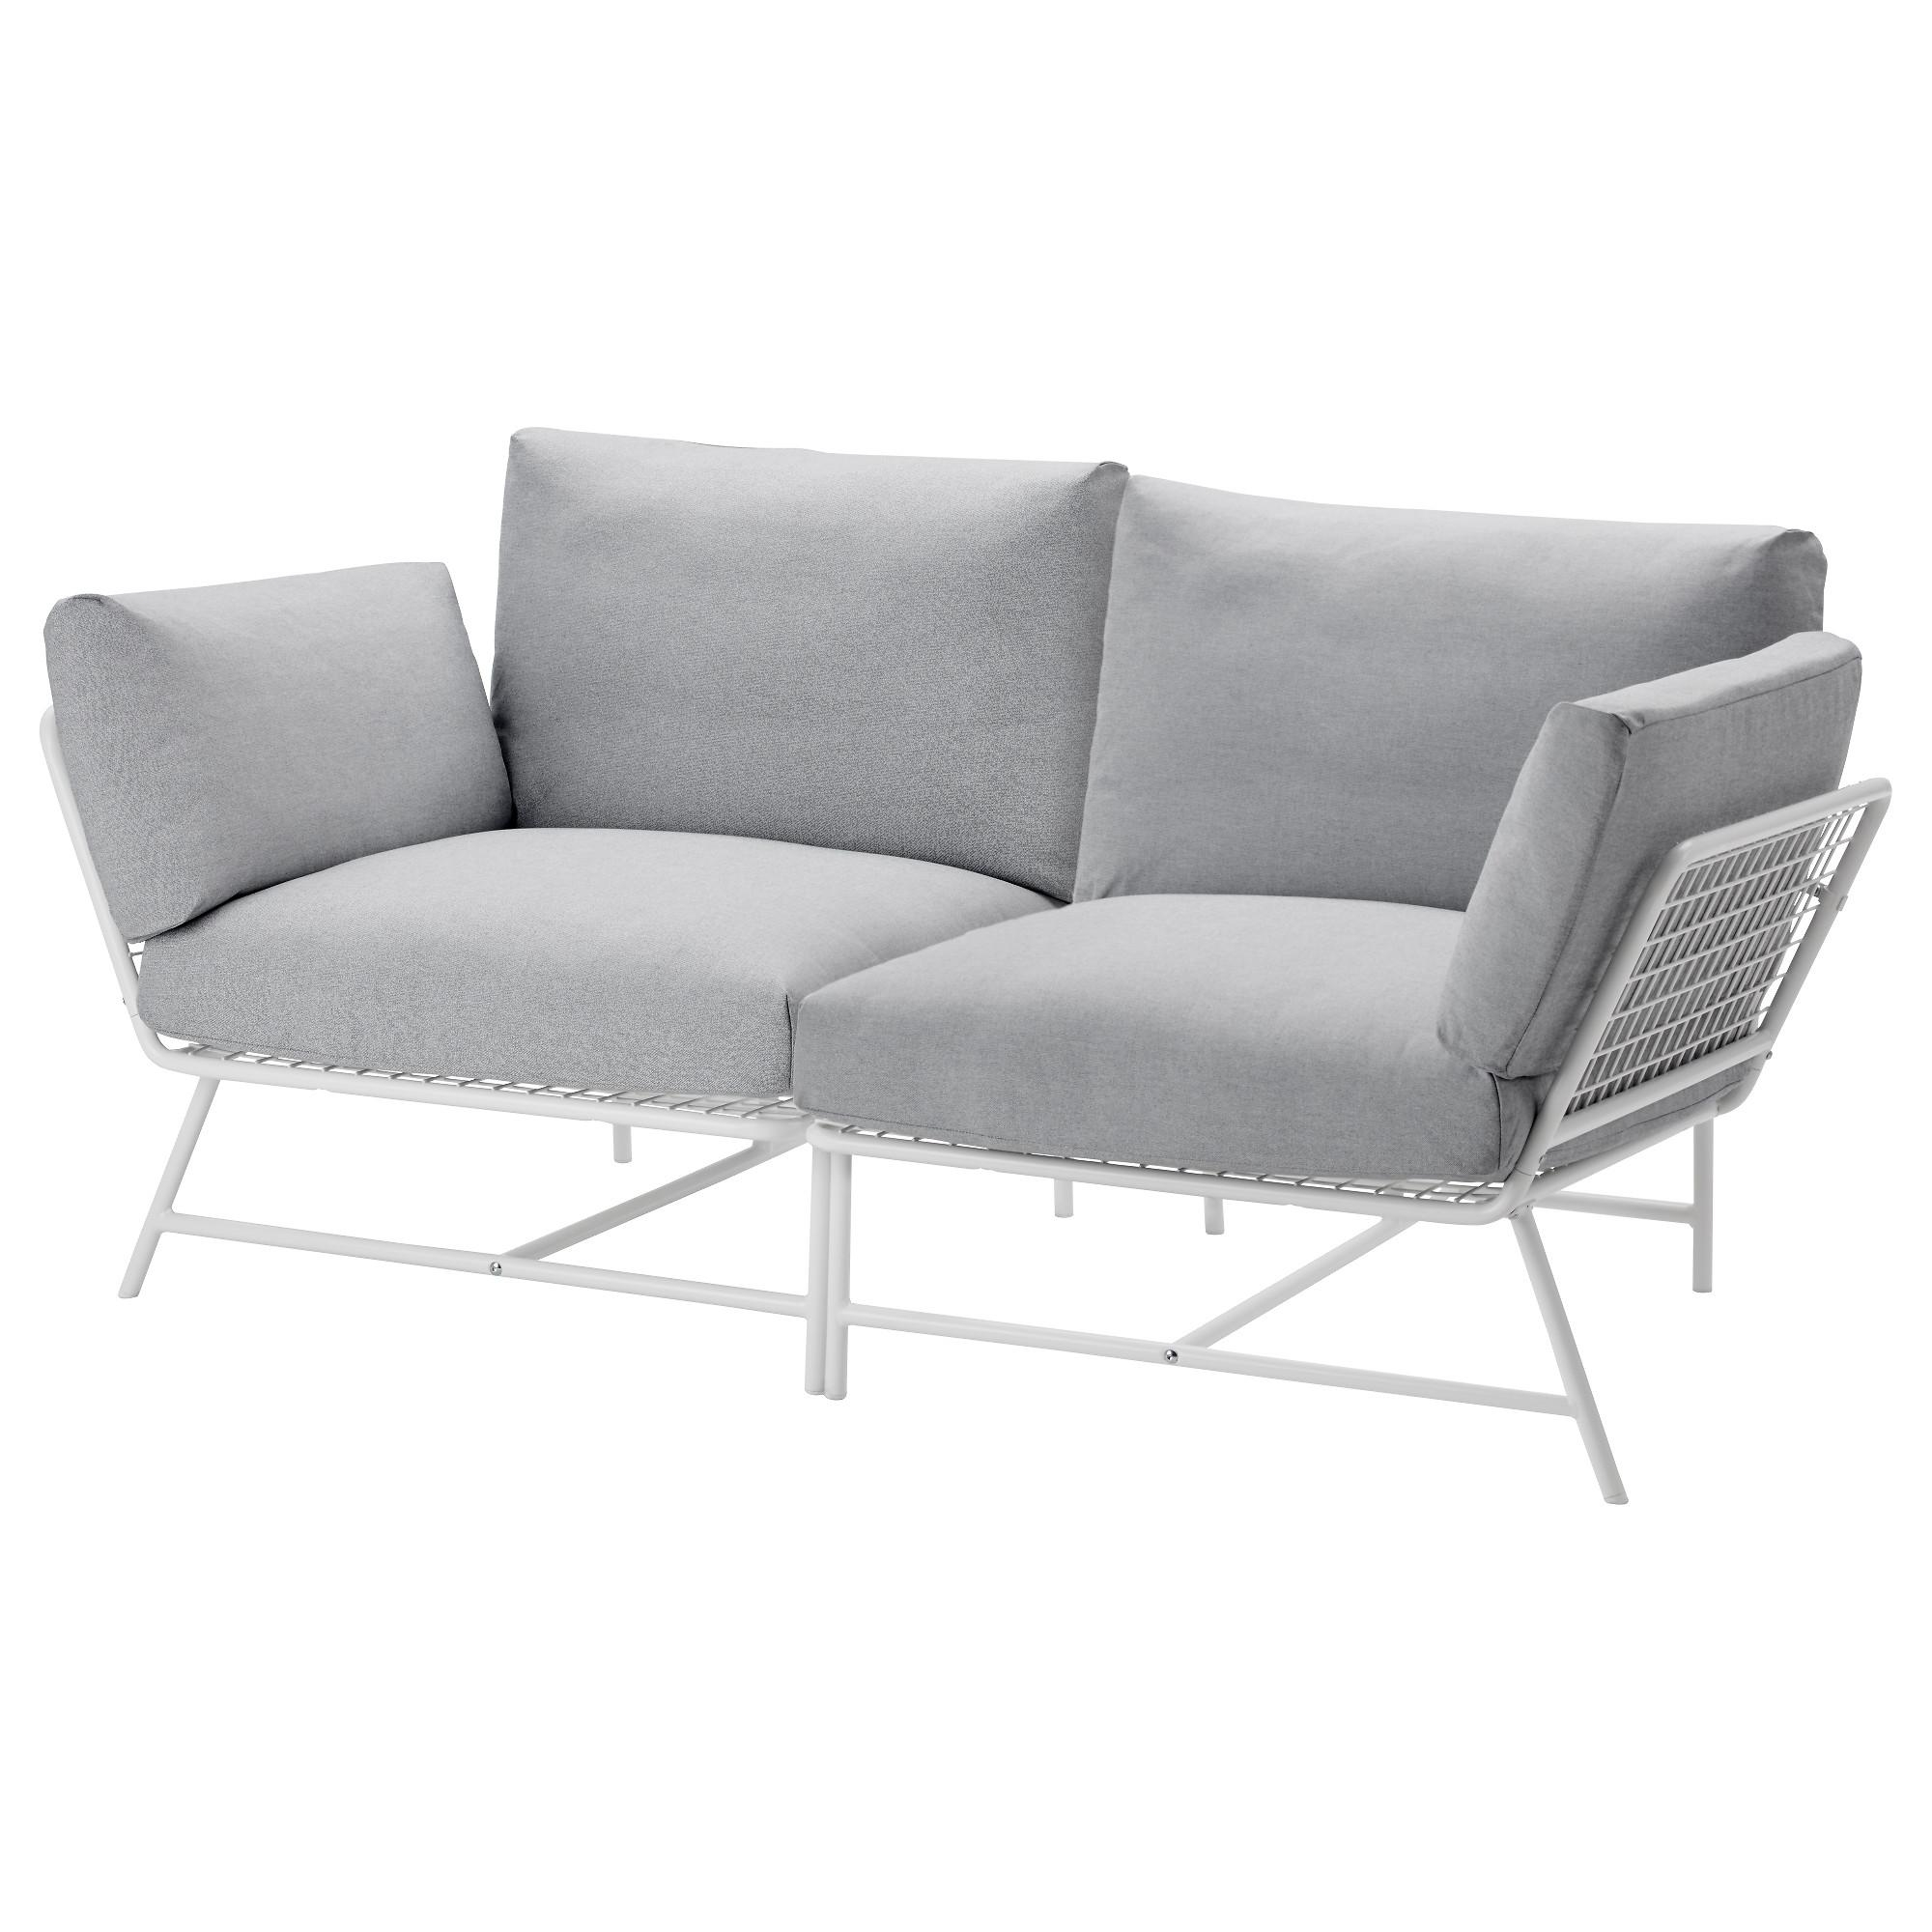 Fabric Loveseats - Ikea pertaining to Ikea Two Seater Sofas